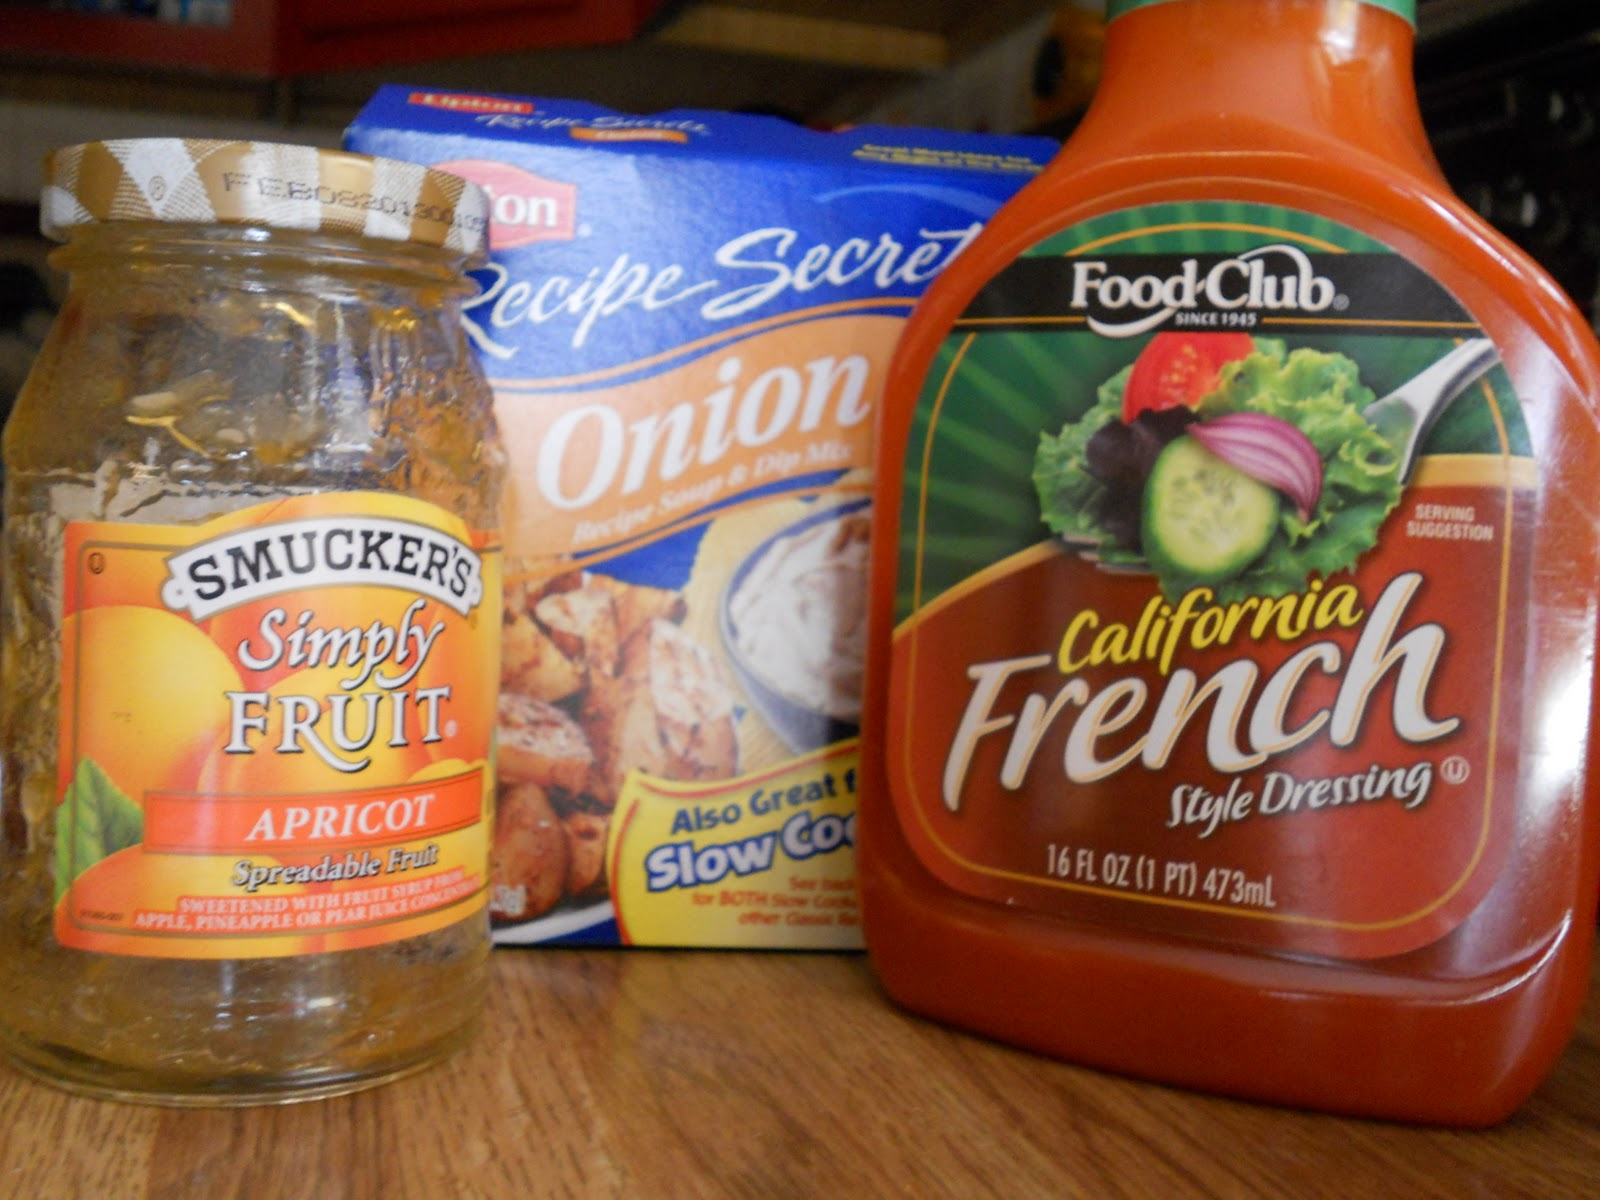 Chicken recipes french dressing